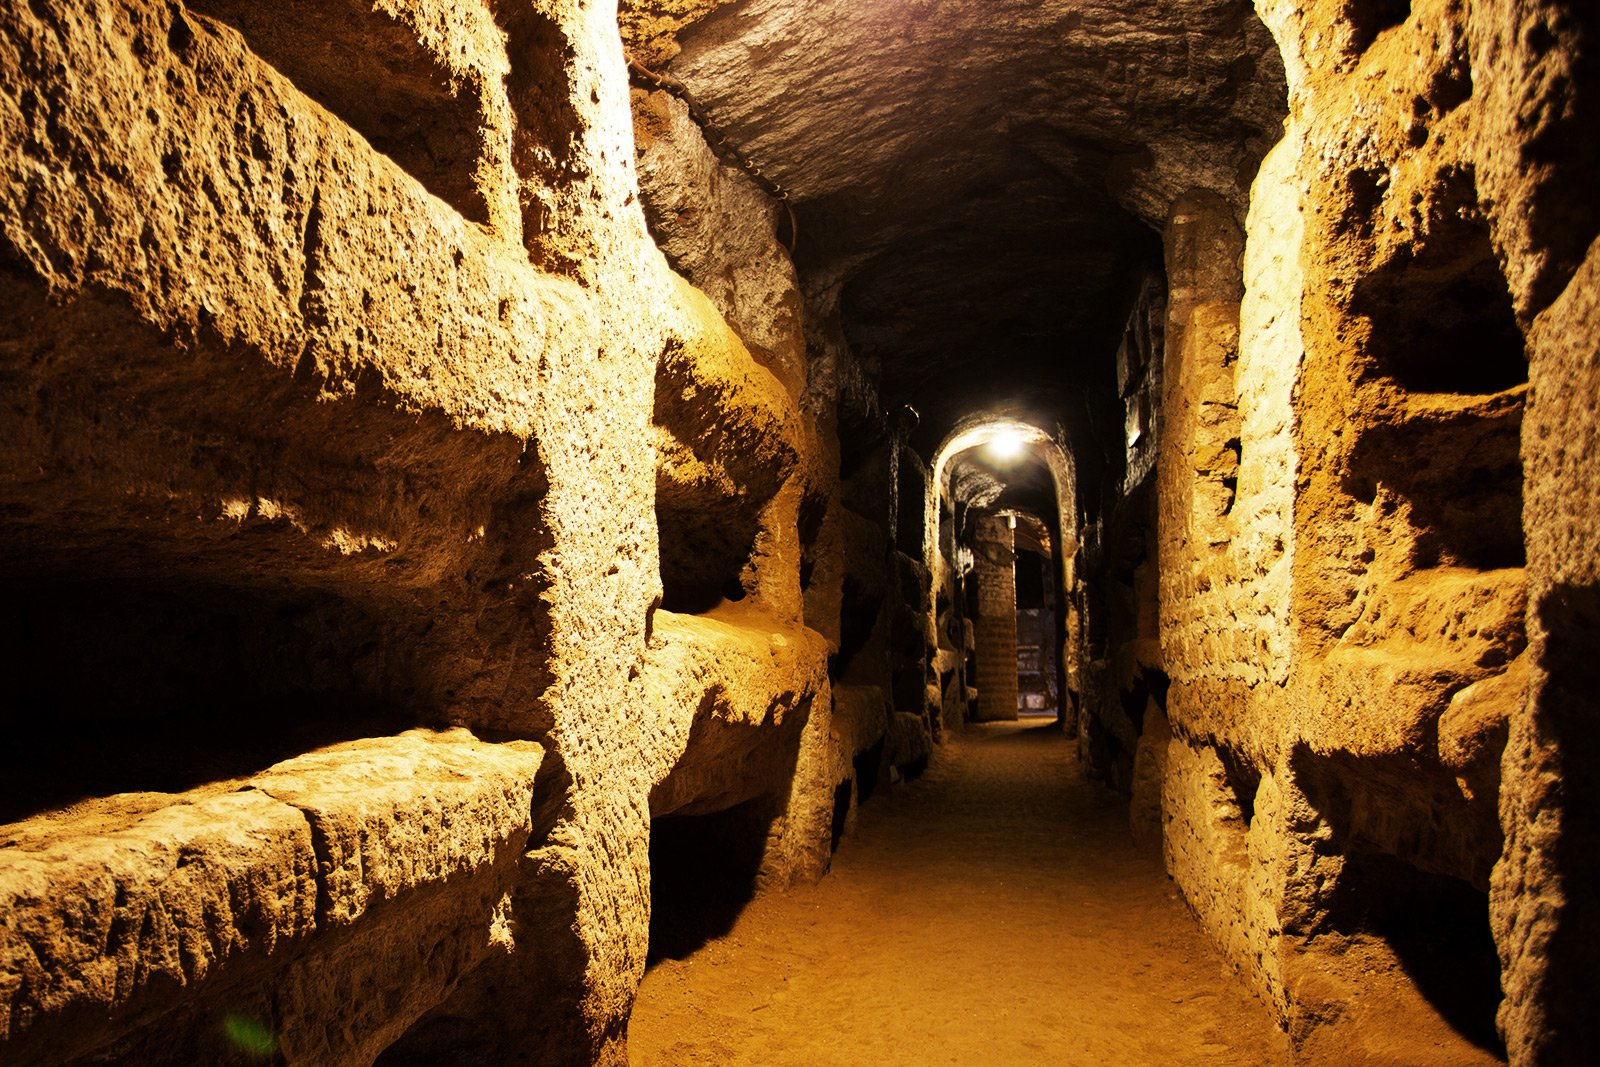 The catacombs of St. Callixtus, Rome